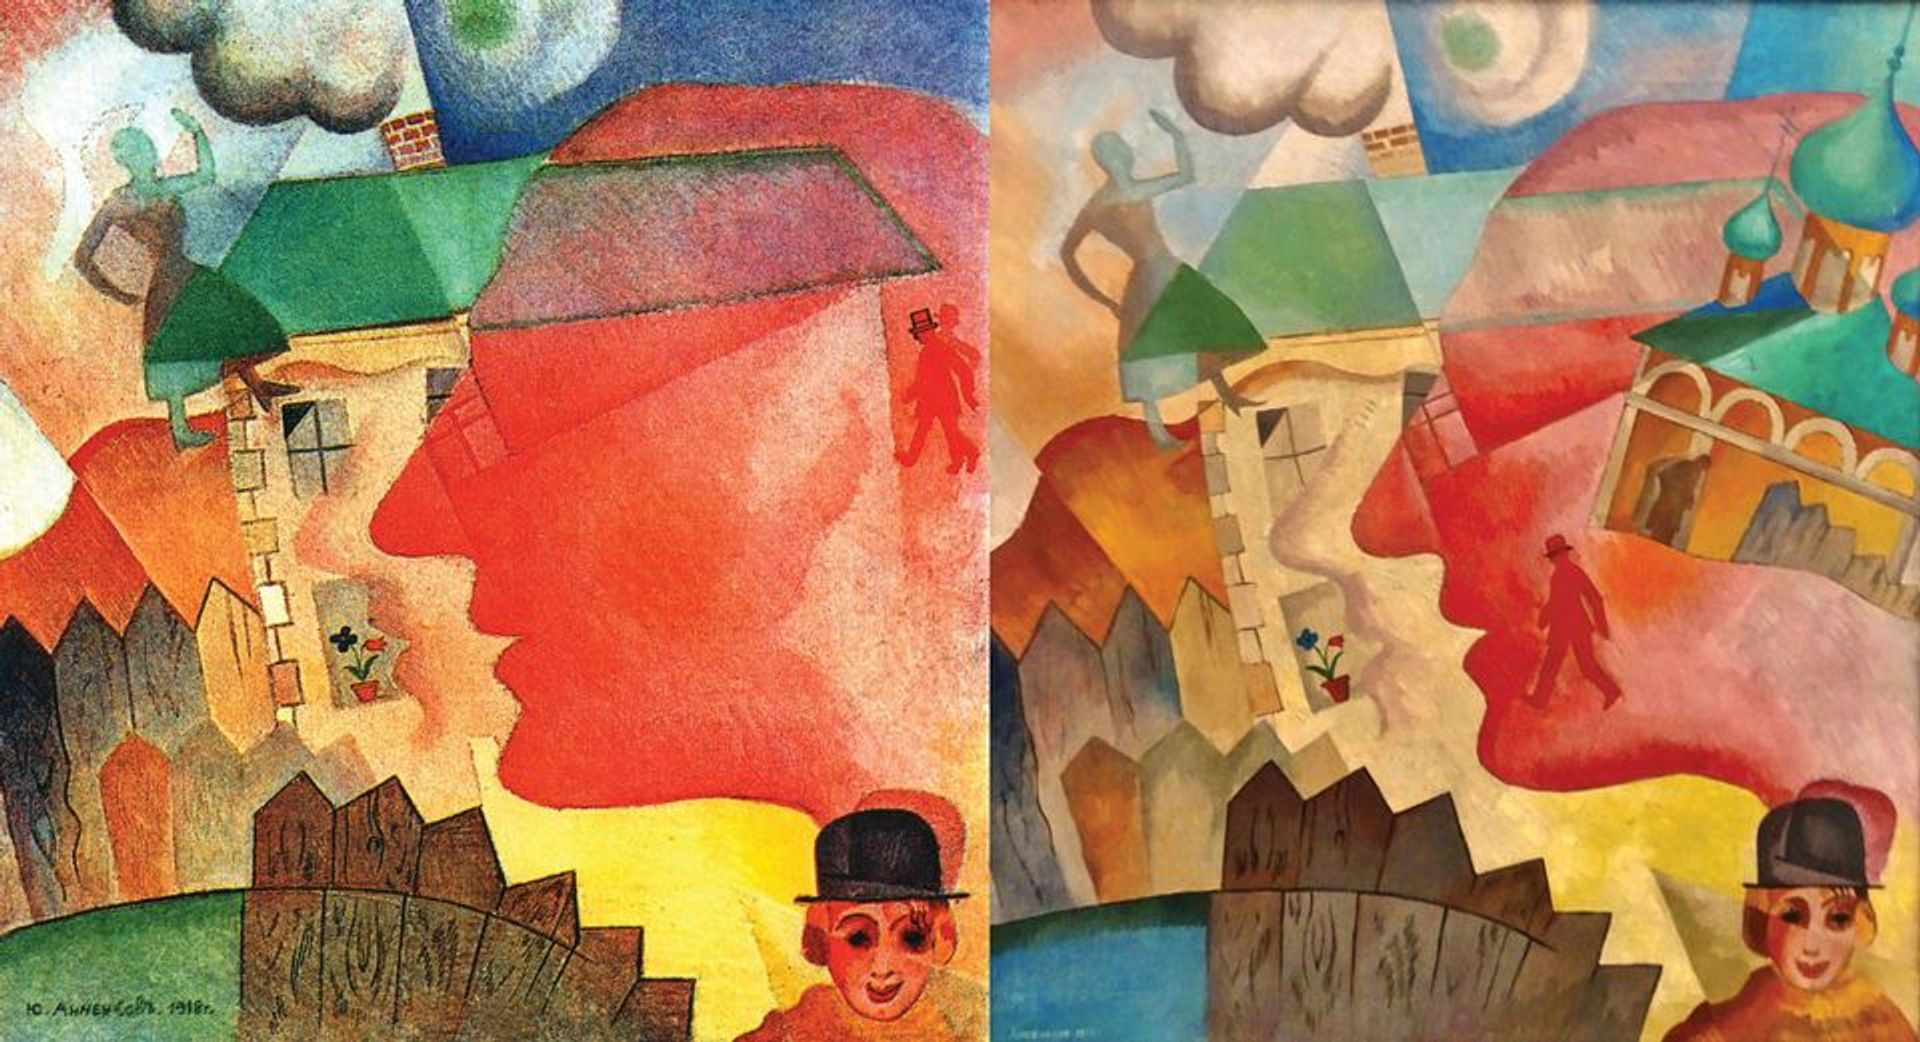 Vladimir Hofmann, the world's leading authority on Yury Annenkov, has pointed out the striking similarity between a fully authenticated Annenkov dated 1918 (left) and a work ascribed to the artist, labelled Synthetic Landscape and dated 1919, which was on display in the Ghent show Dieleghem Foundation (Synthetic landscape)